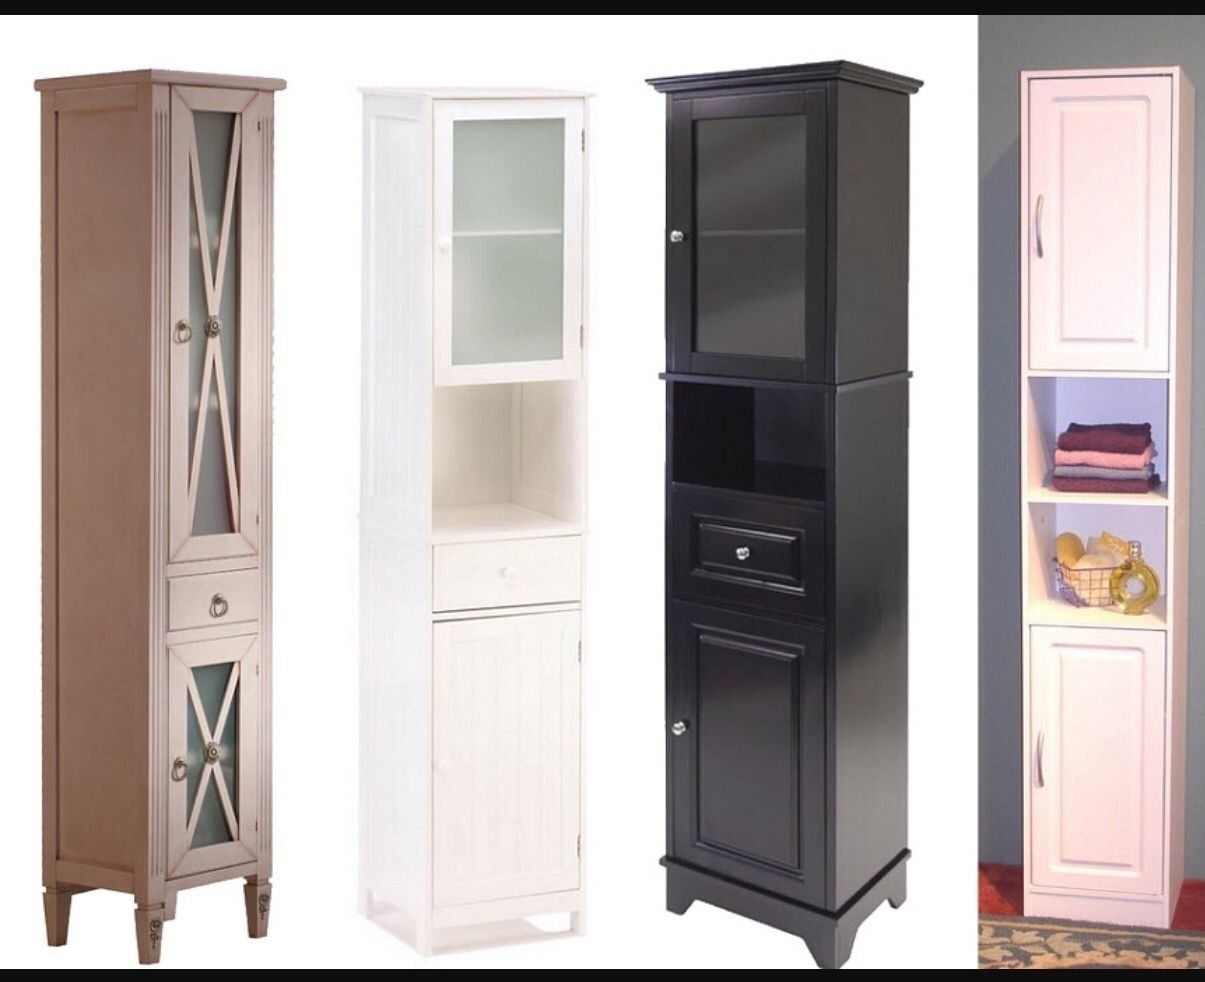 Narrow Cabinets With Doors Ideas On Foter In 2021 Narrow Cabinet Cabinet Doors Small Storage Cabinet